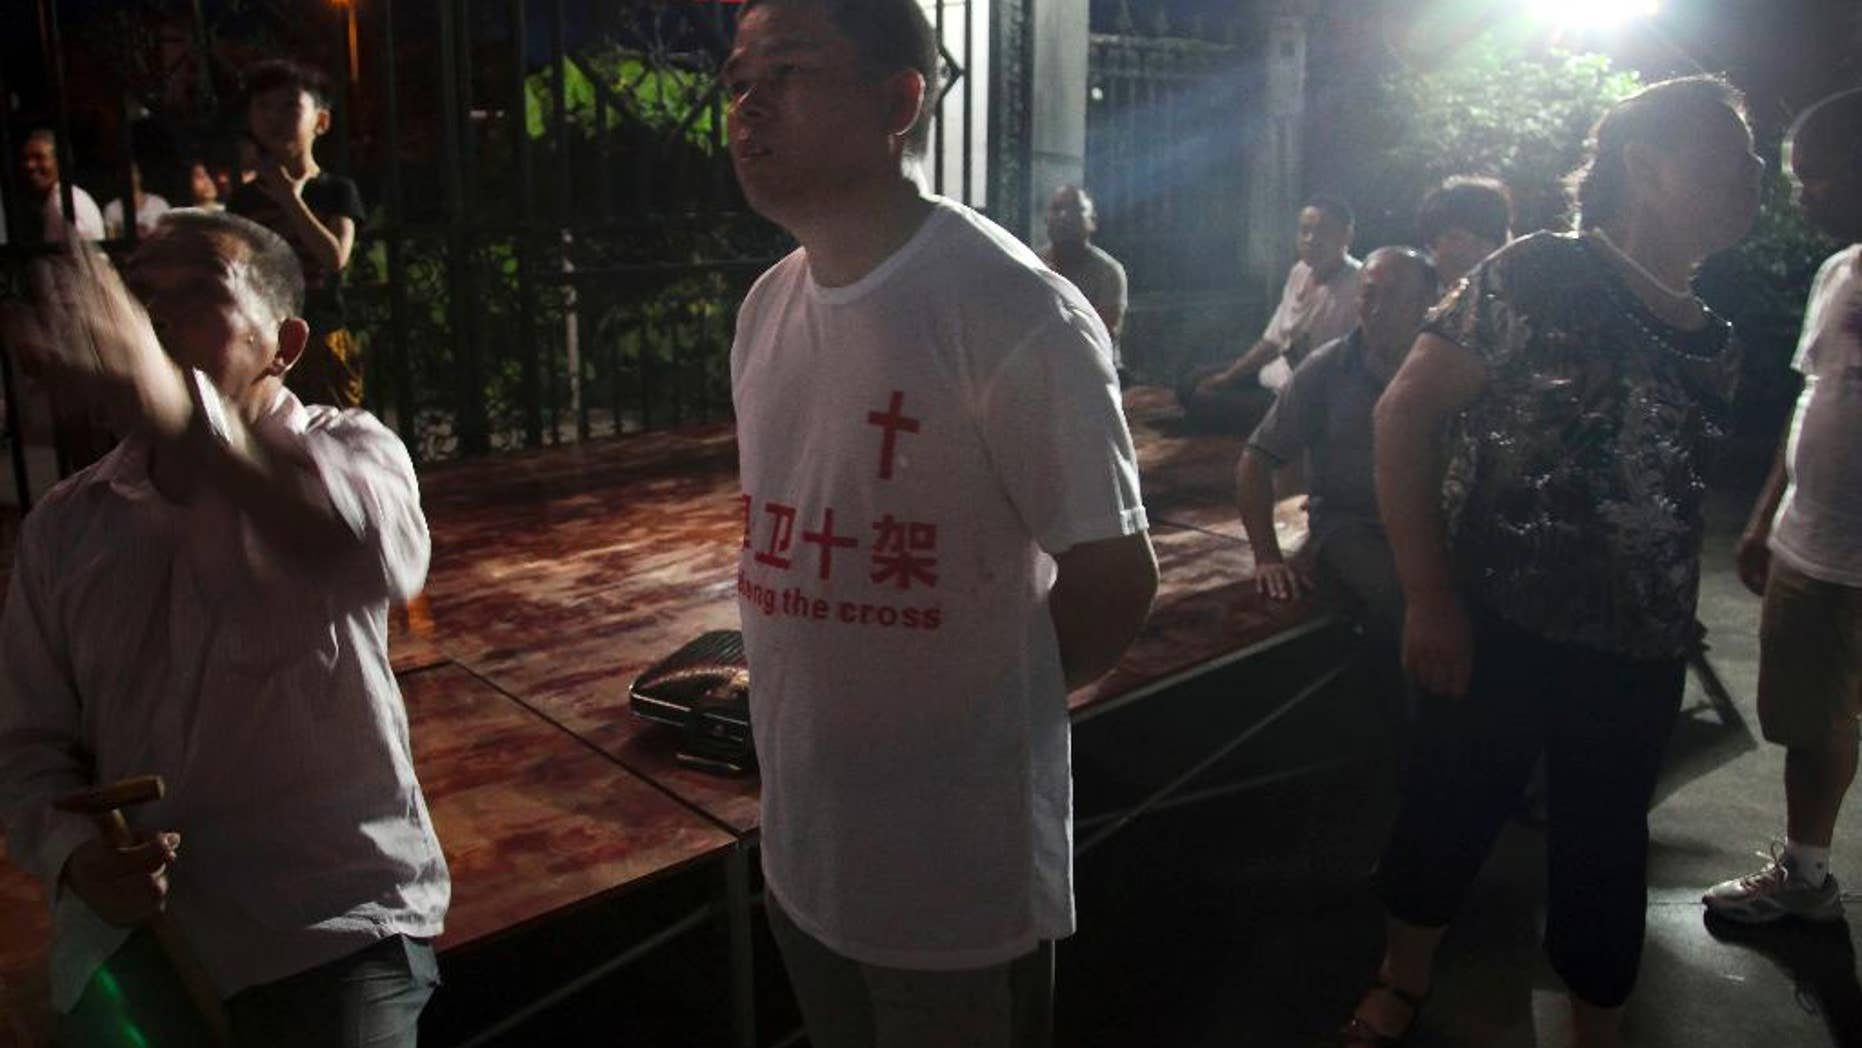 Chinese Christians jailed for faith memorize Bible because